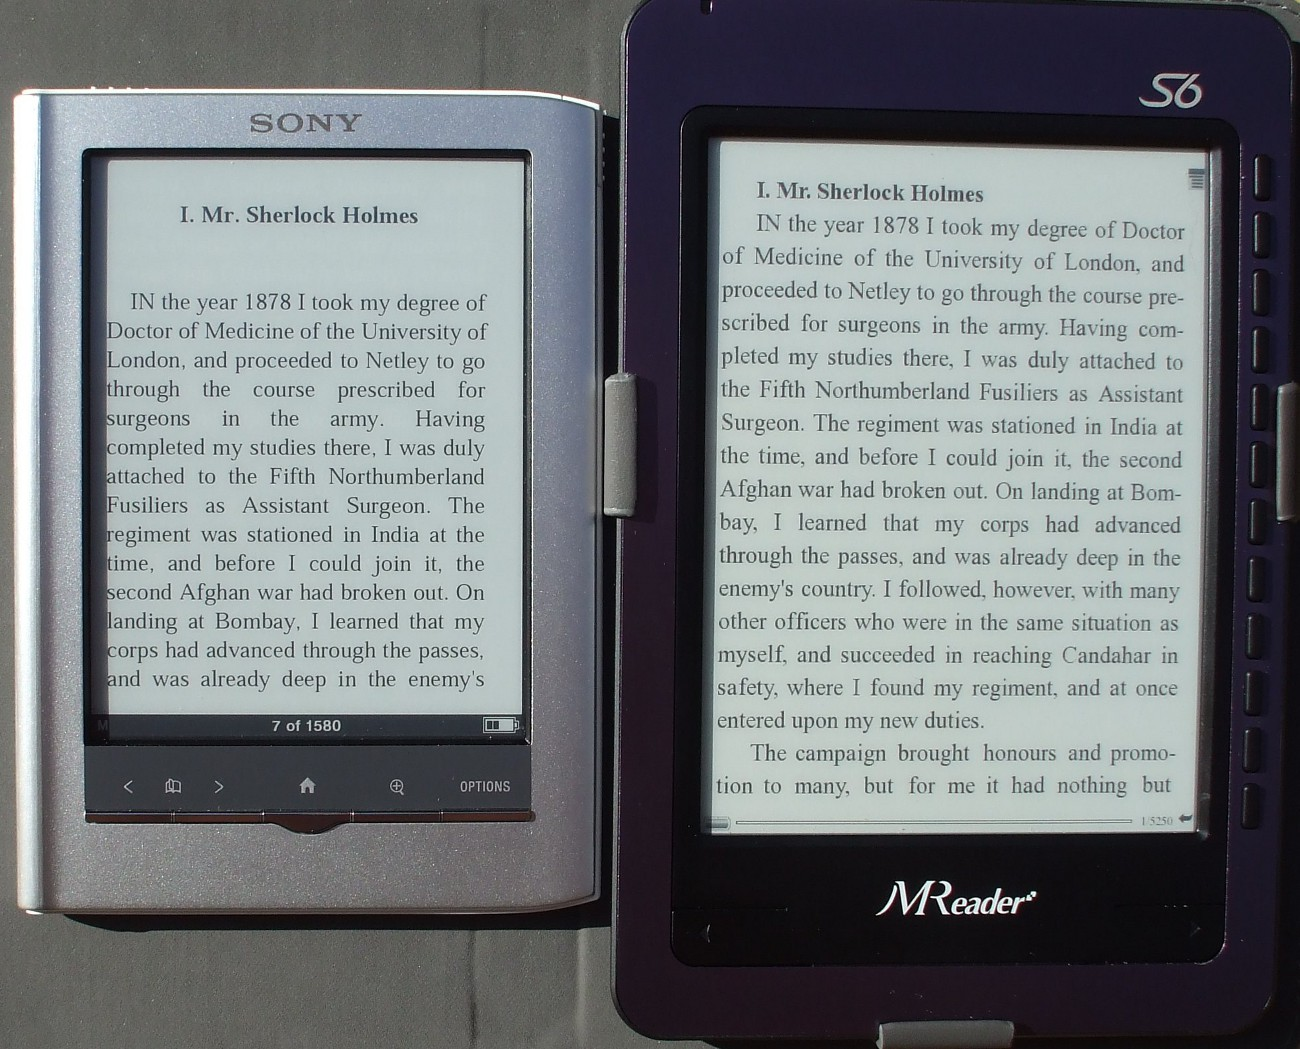 Pearl Vs Vizplex Are The New High Contrast Pearl Screens Overrated The Ebook Reader Blog